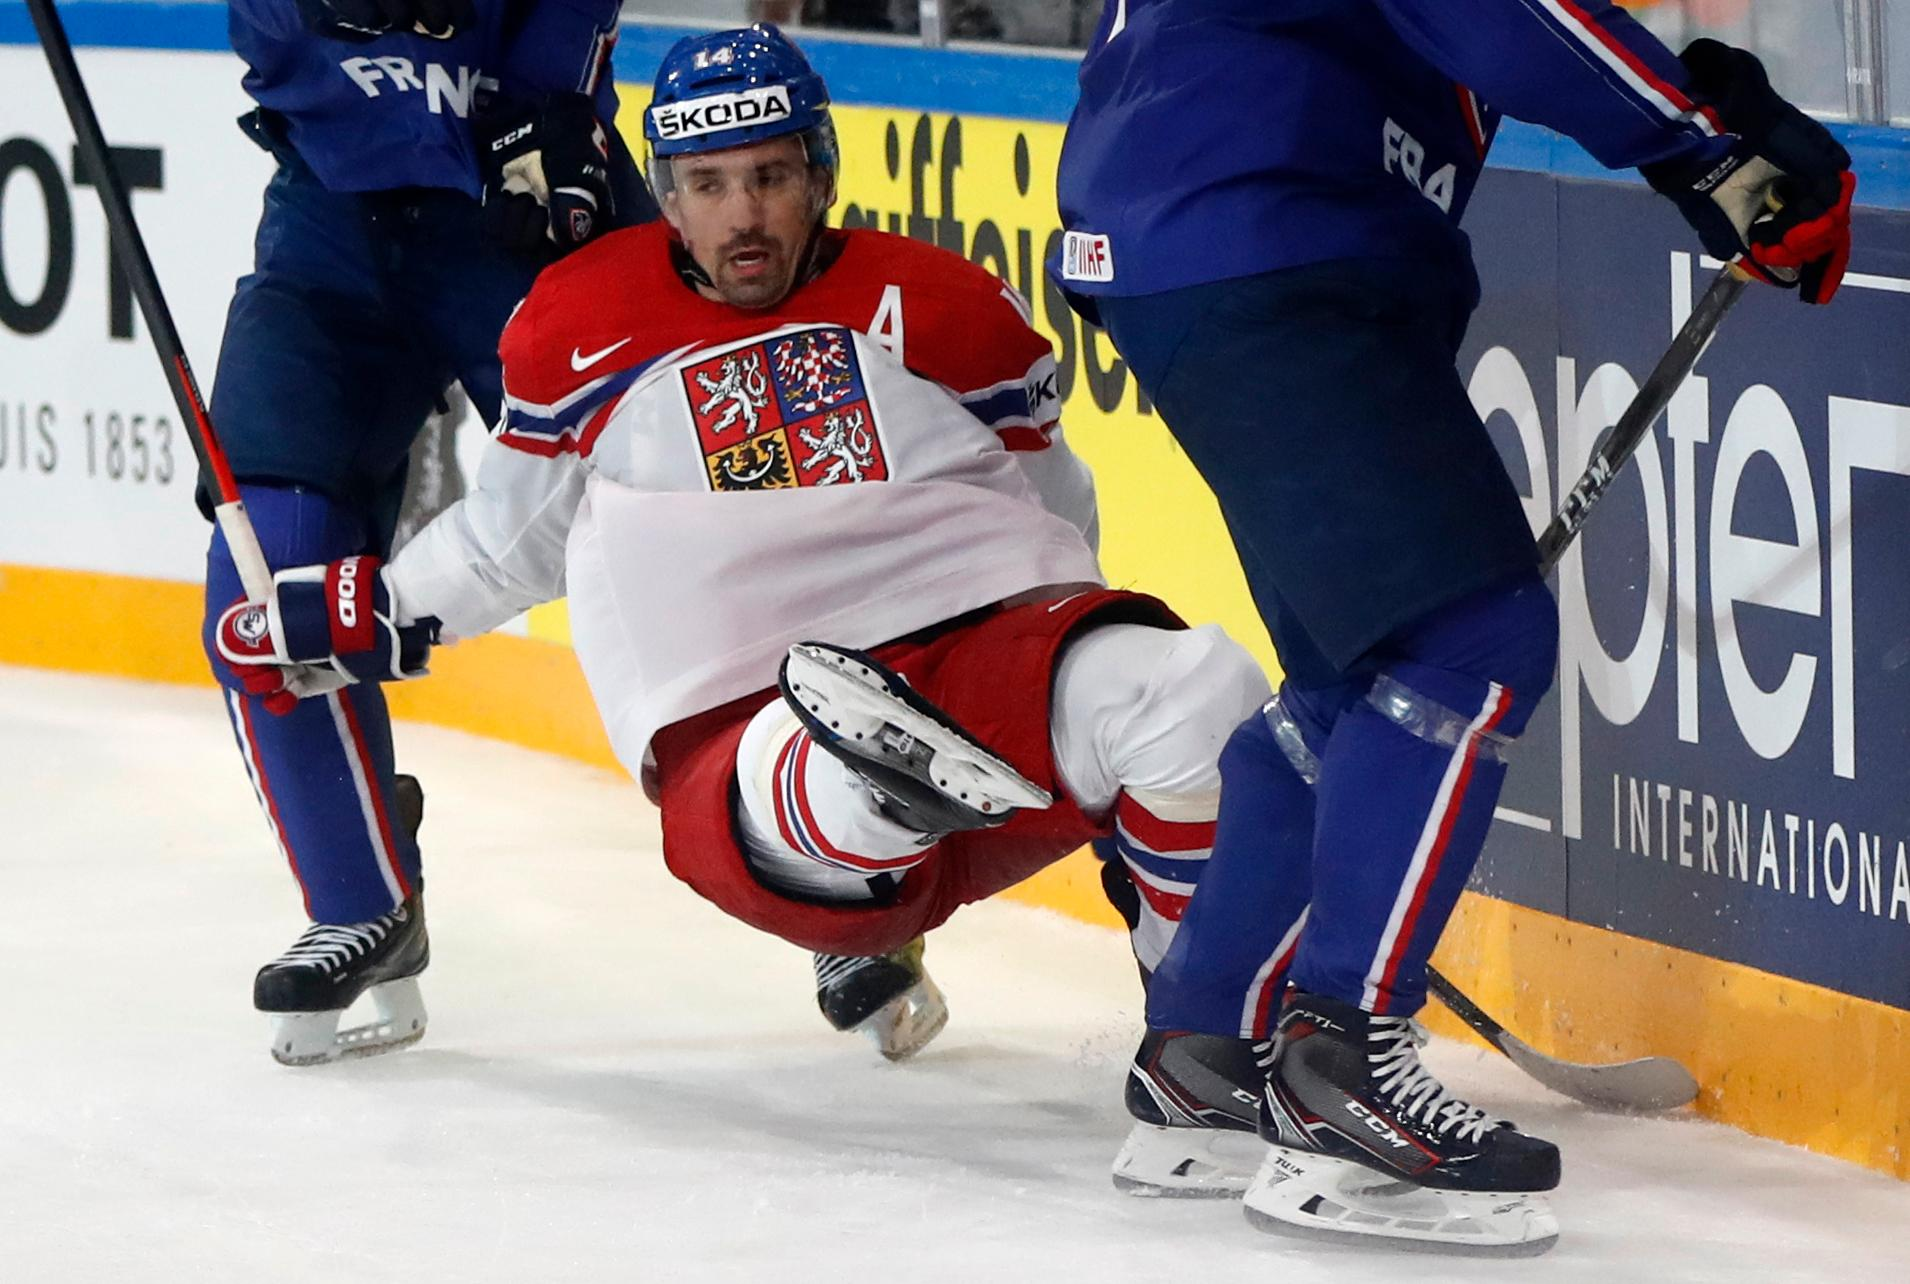 Czech Republic's Tomas Plekanec is checked during the Ice Hockey World Championships group B match between France and Czech Republic in the AccorHotels Arena in Paris, France, Sunday, May 14, 2017. (AP Photo/Petr David Josek)